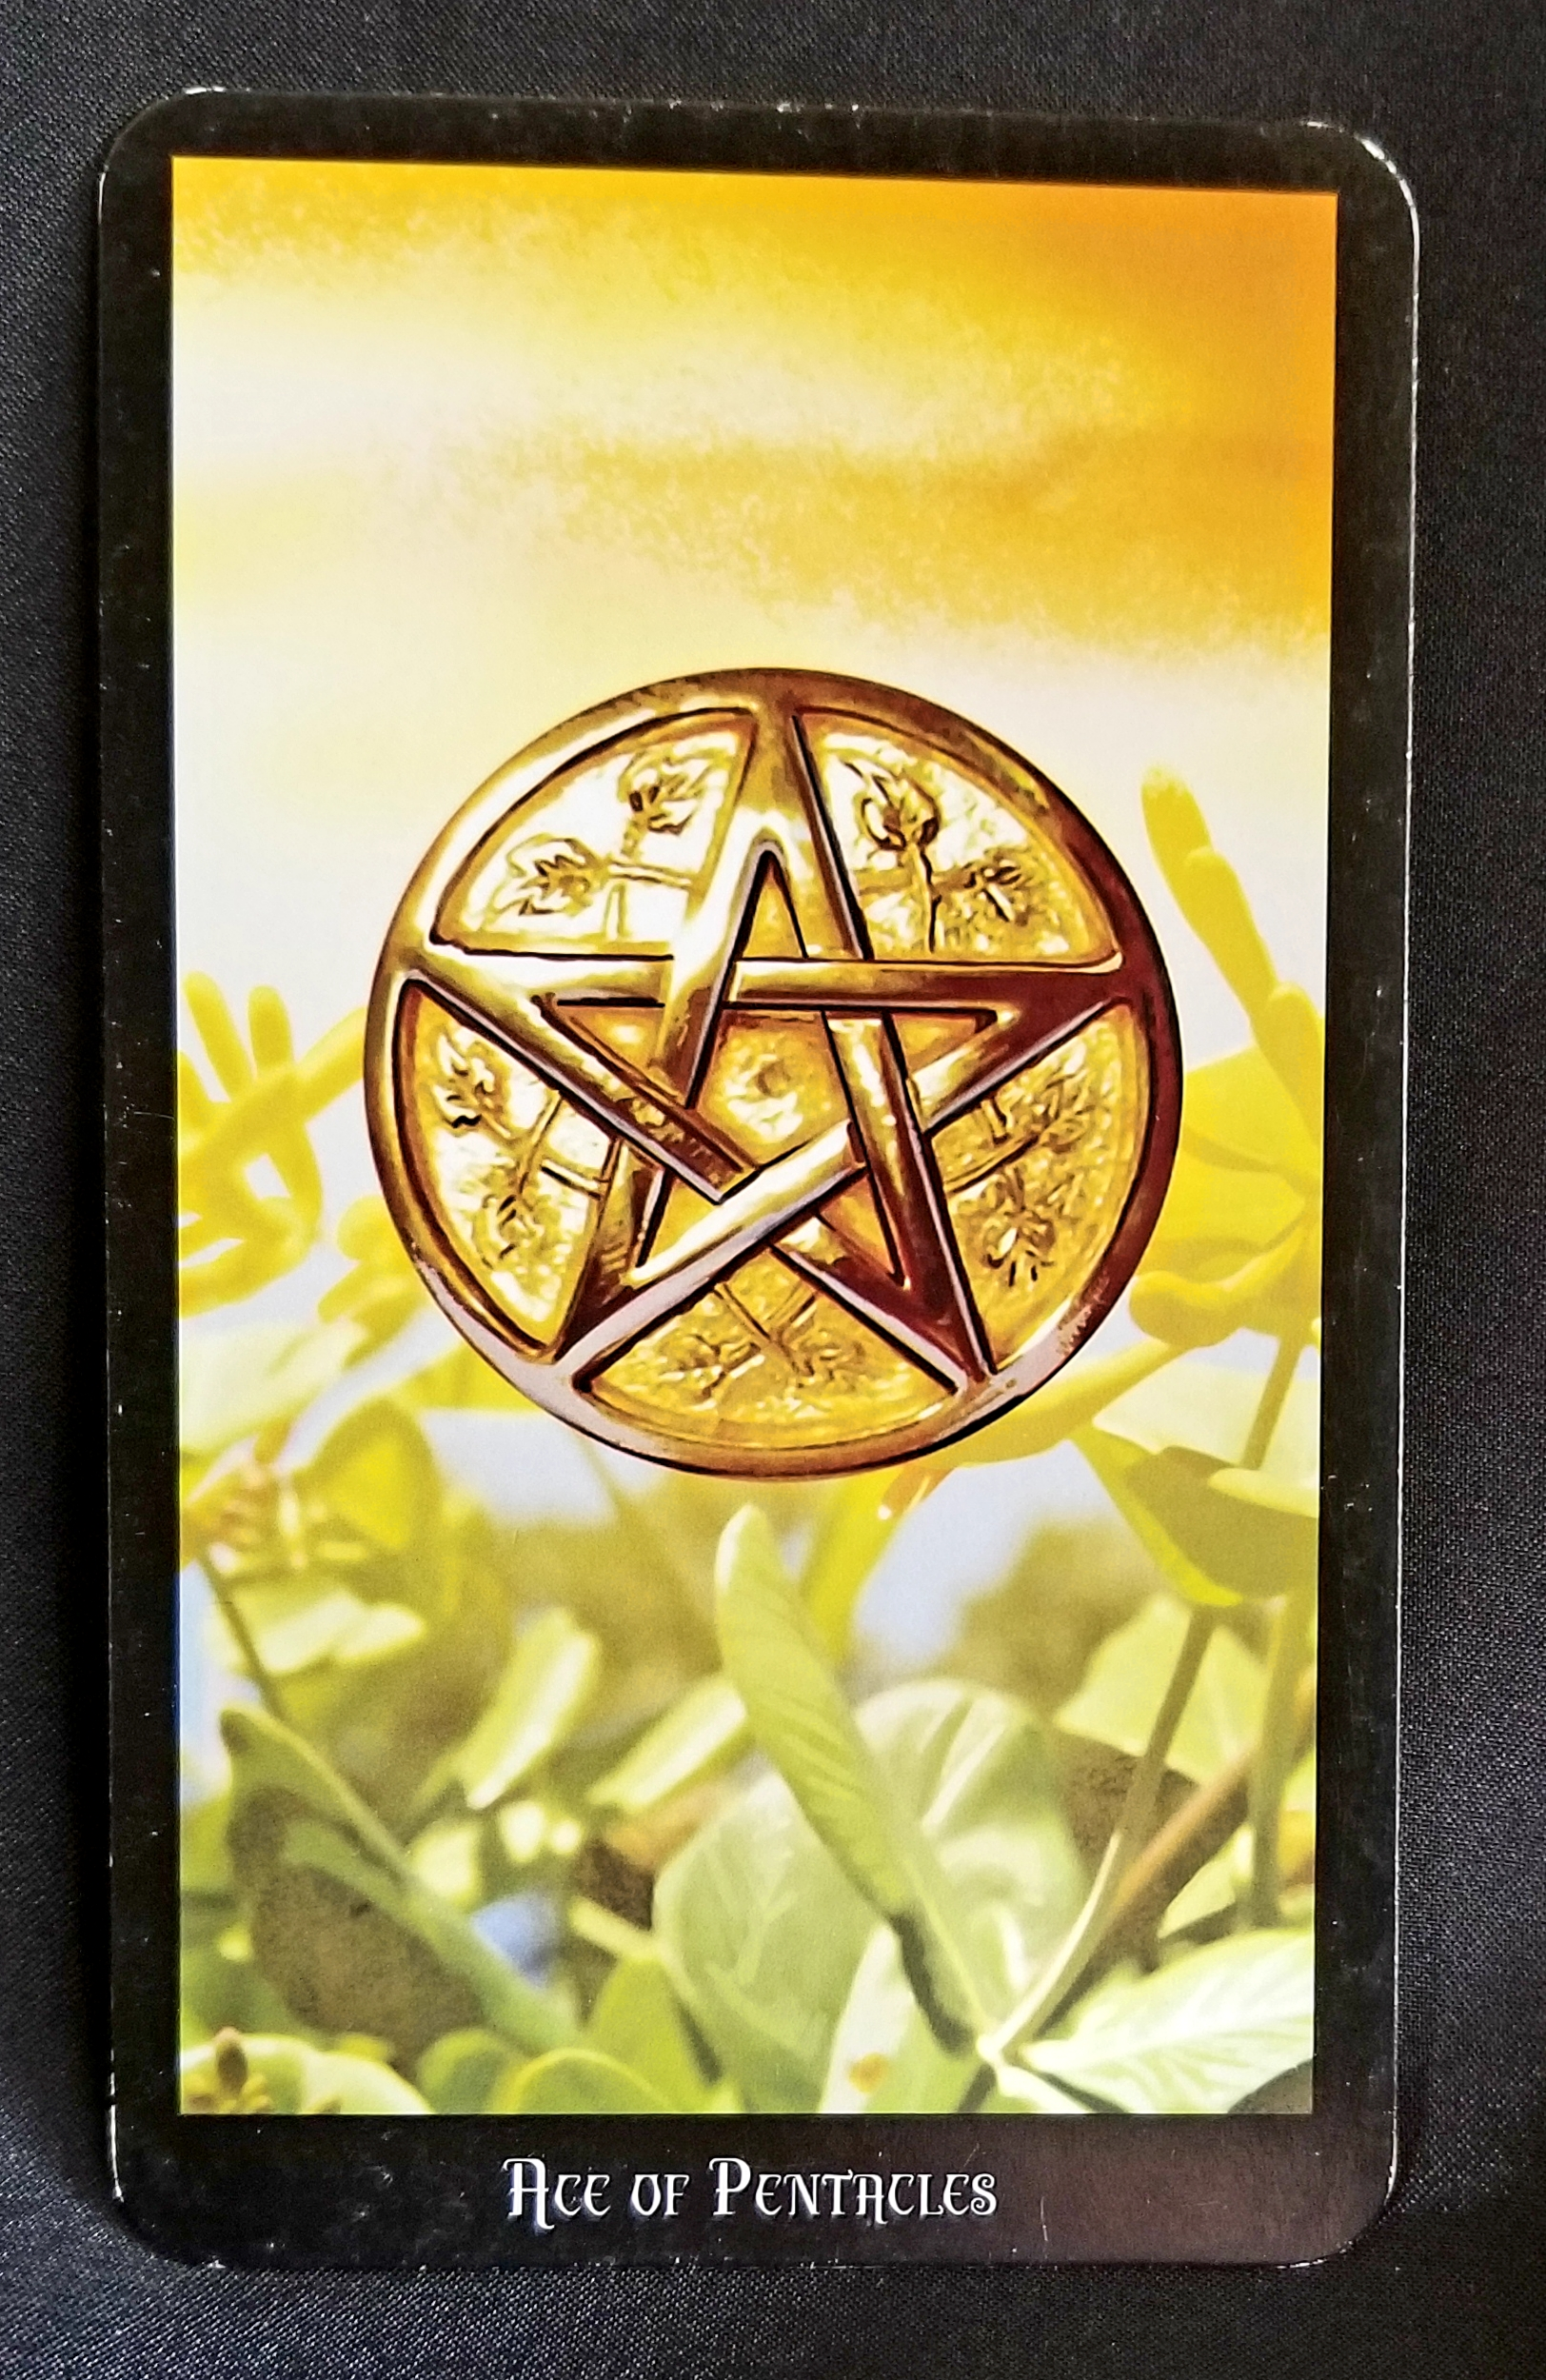 Ace of Pentacles - Tarot Card of the Day - Beneath the